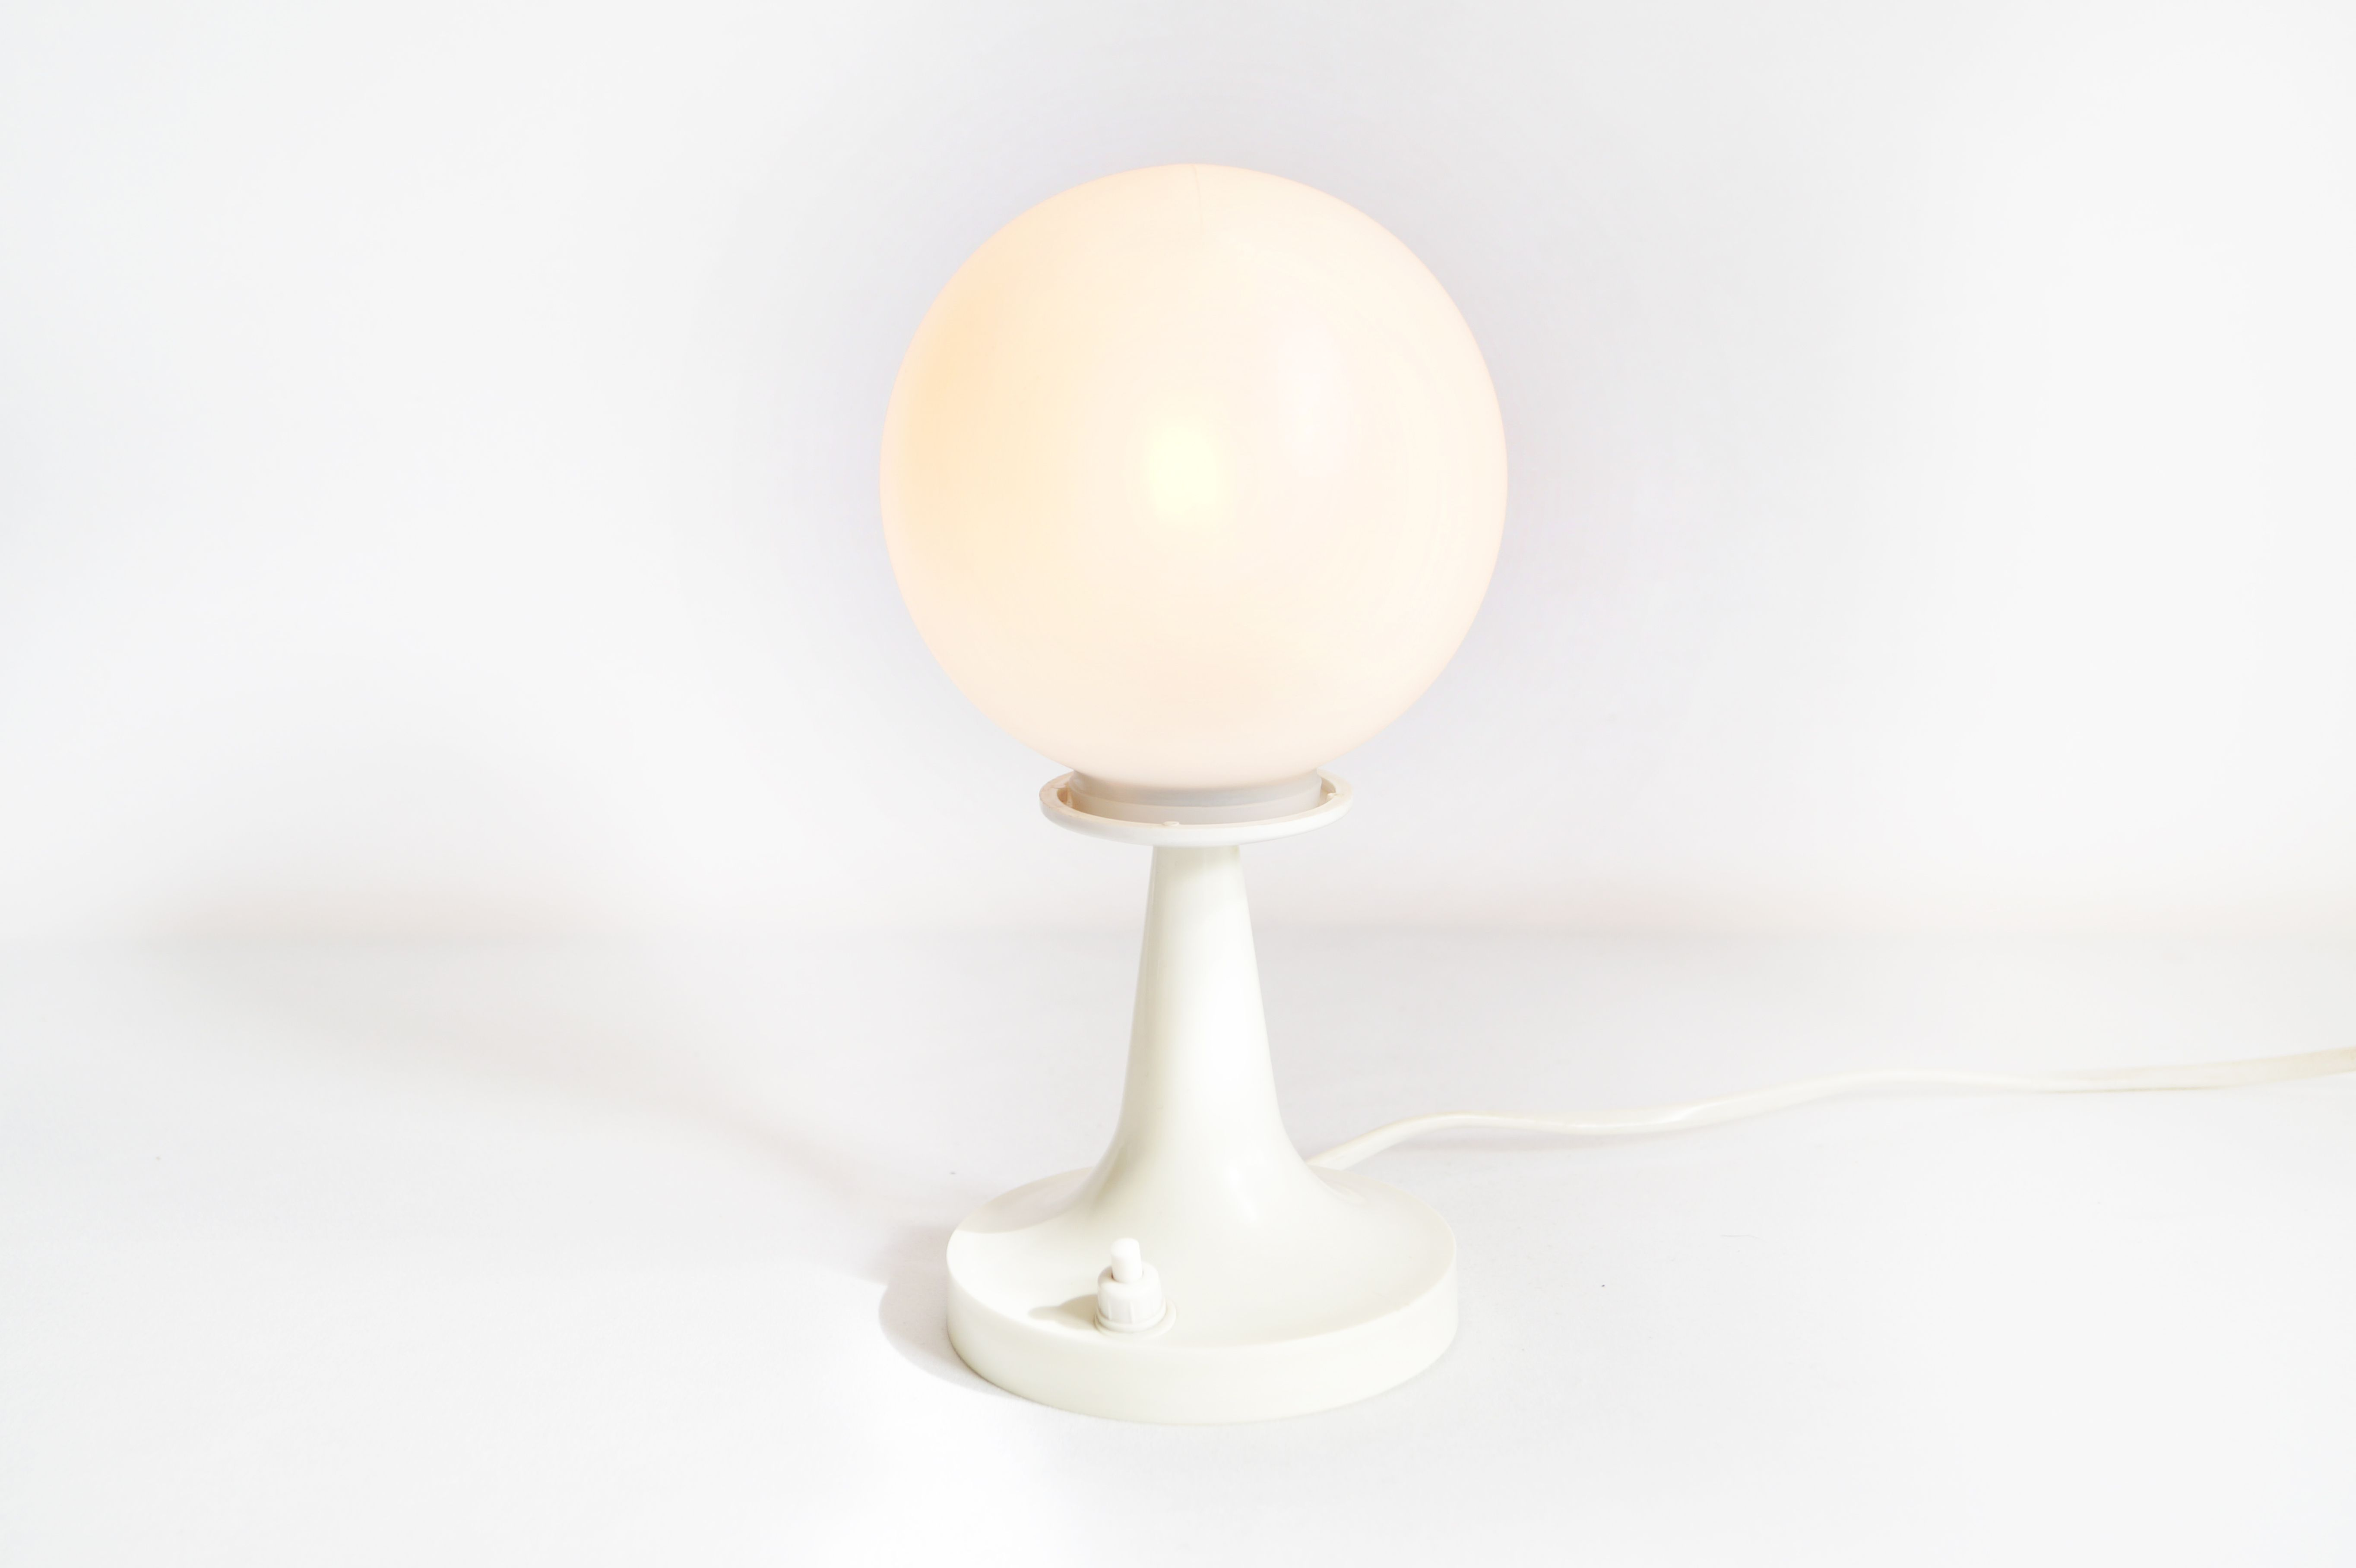 Reserved For Qqq Mid Century Modern Table Lamp Ball Lamp Etsy Mid Century Modern Table Lamps Table Lamp Ball Lamps